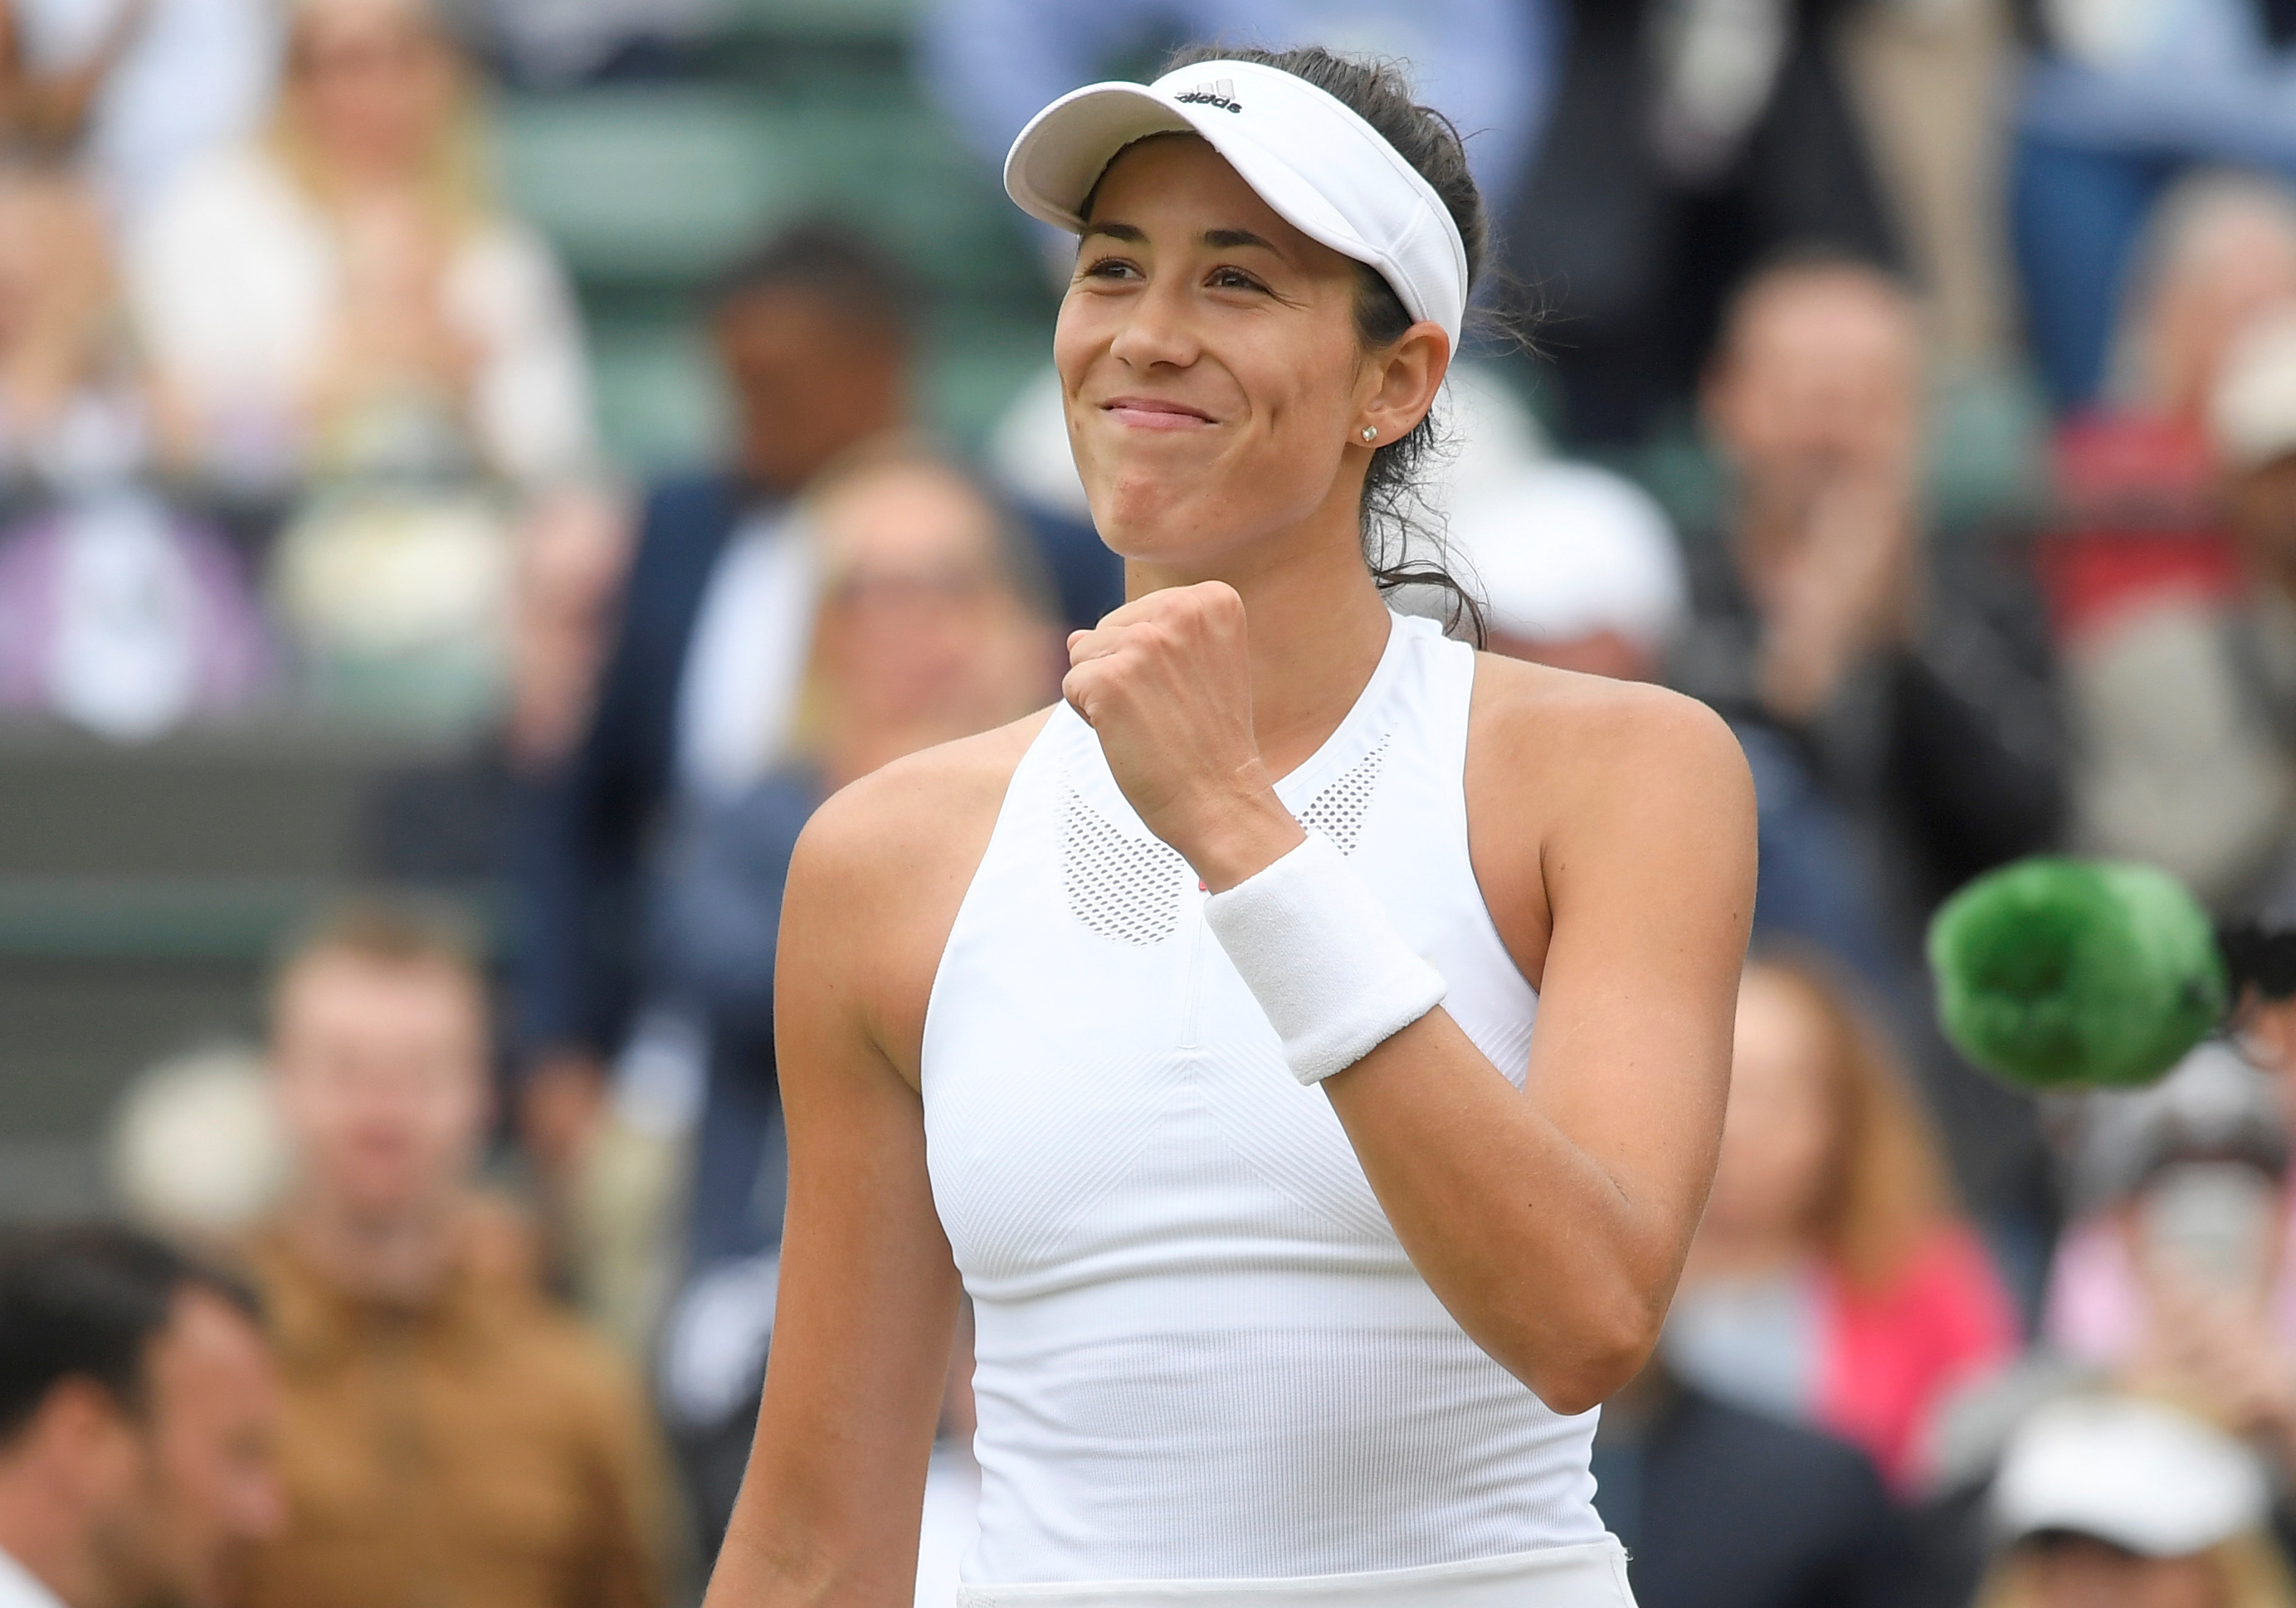 Garbine Muguruza dropped just one set on her way to the Wimbledon title last year